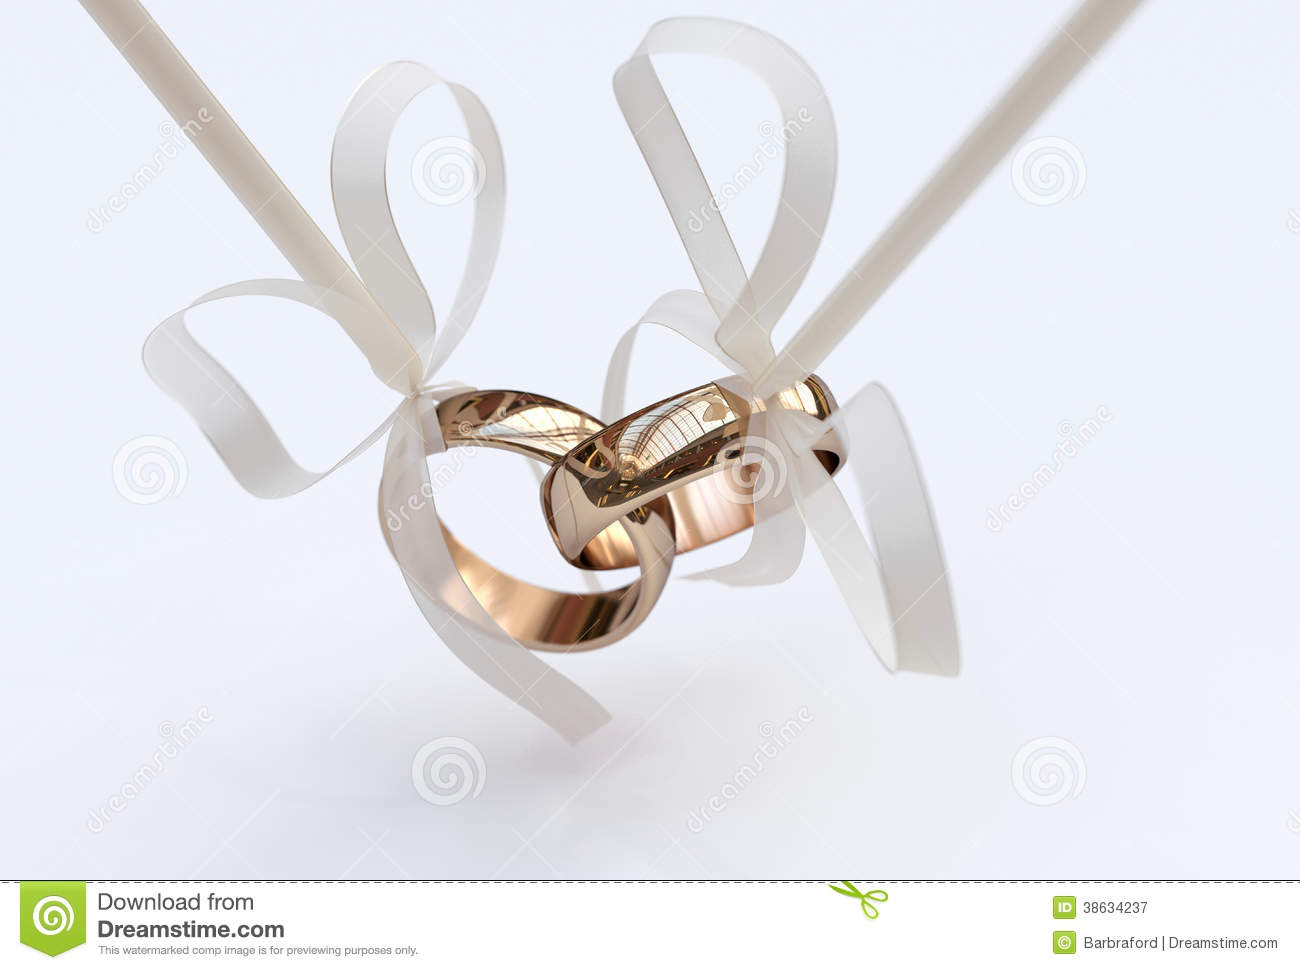 royalty free stock photography couple gold wedding rings bows white background image couples wedding bands Couple of gold wedding rings with bows